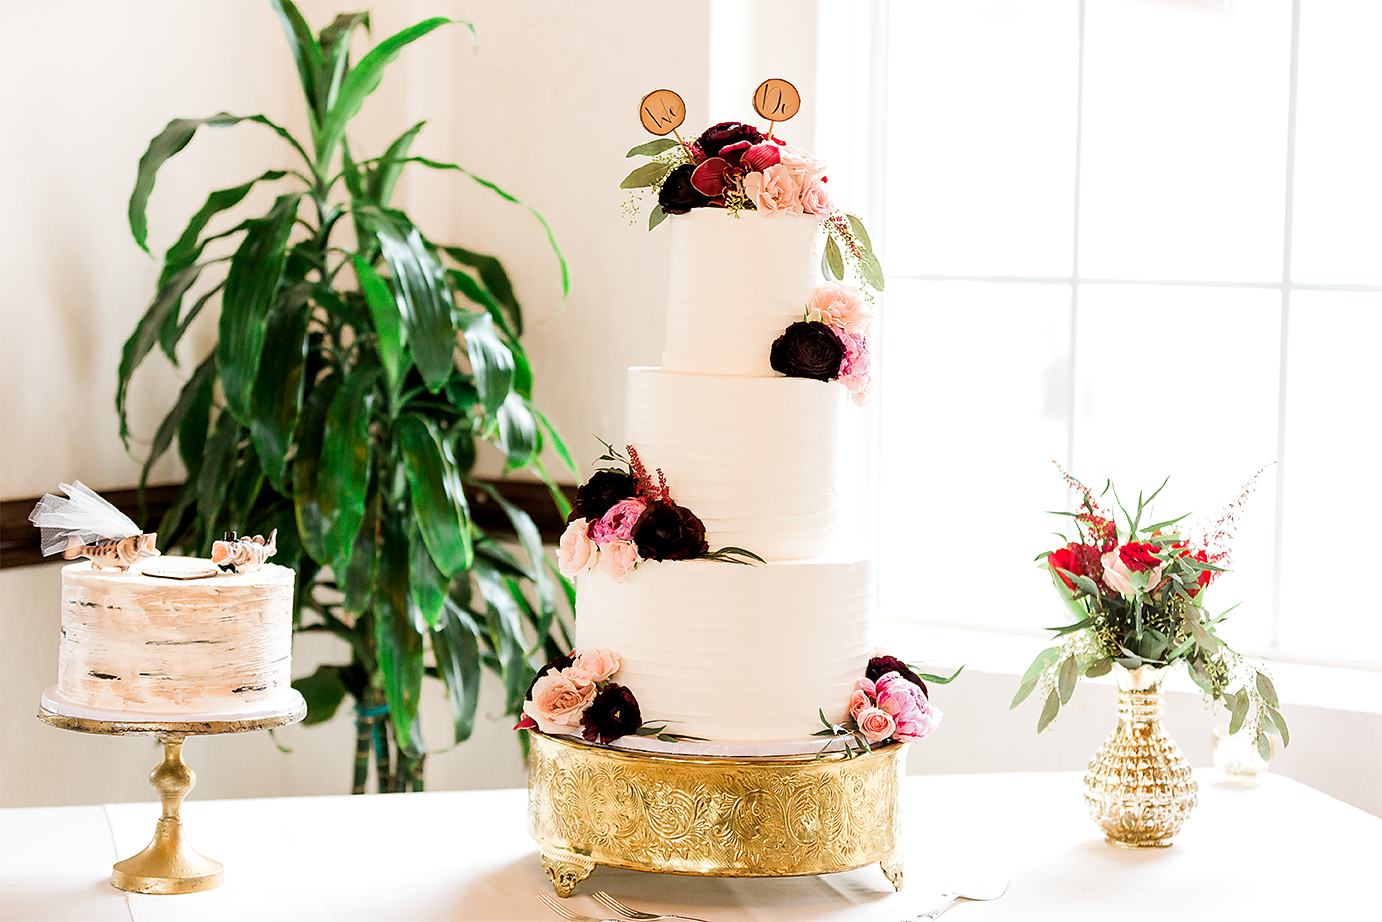 wedding cakes by Alleycakes Bakery